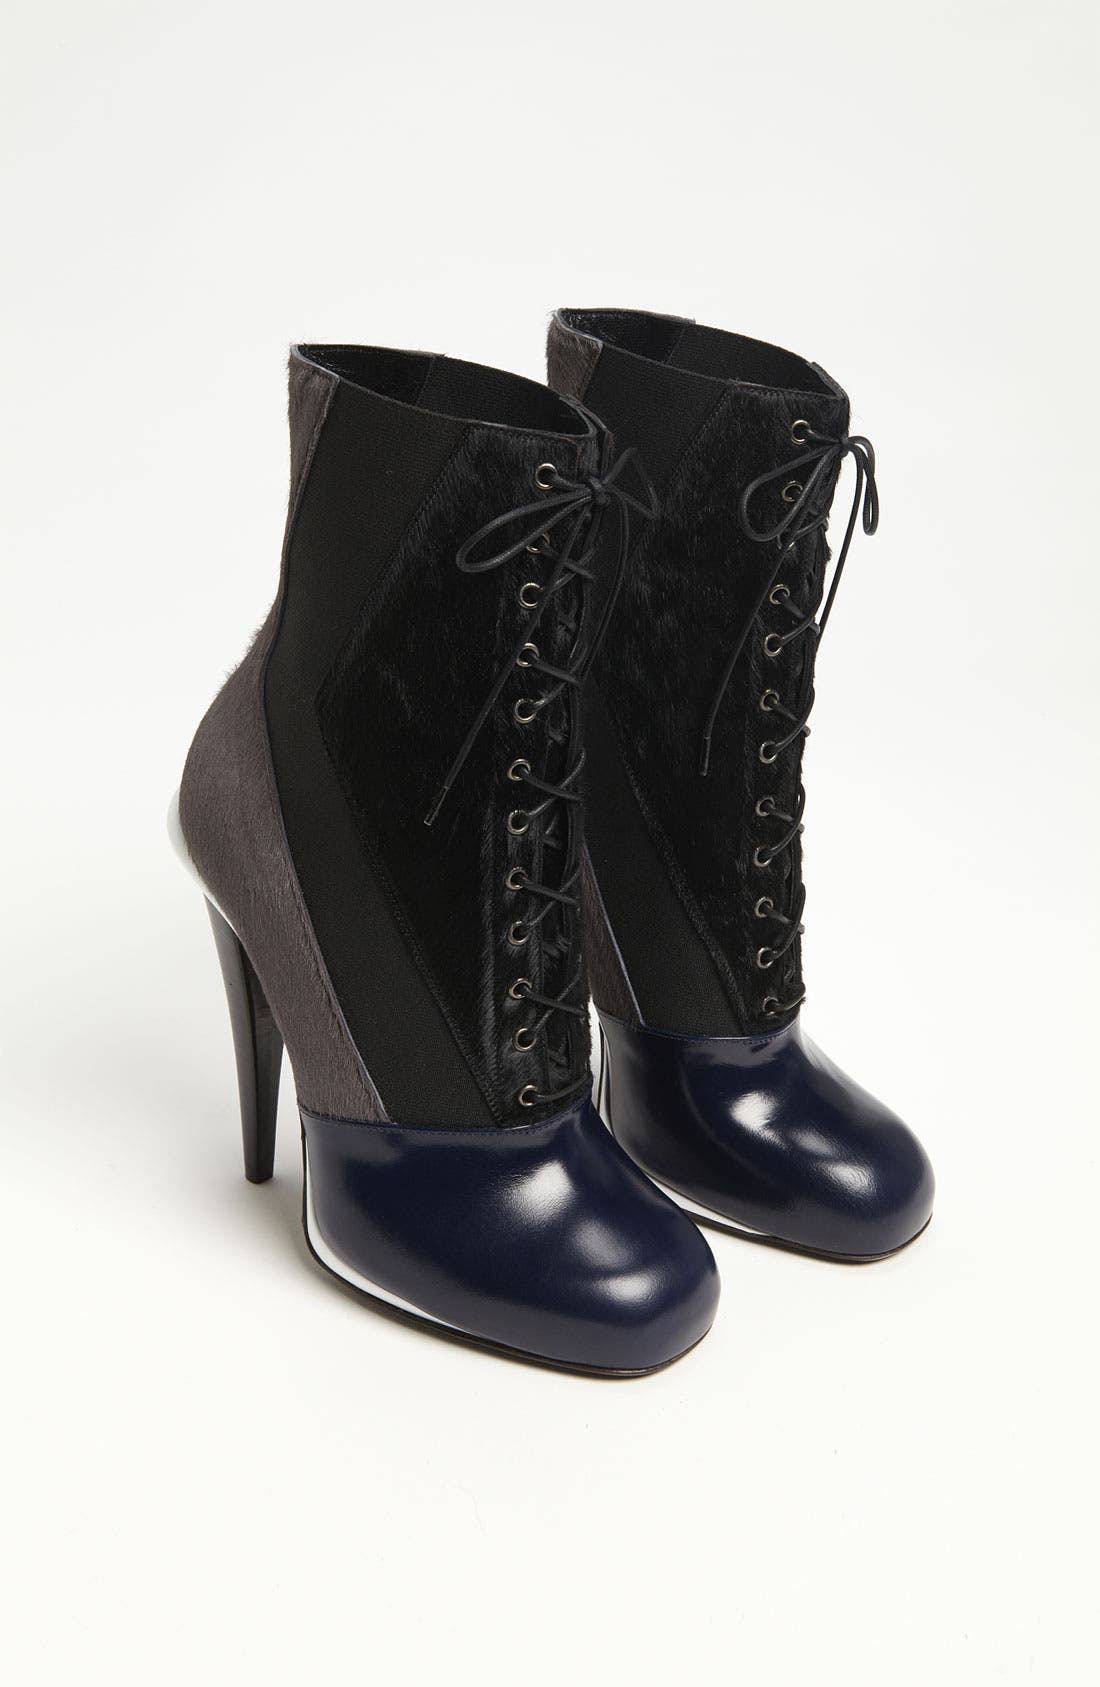 'Victorian' Lace-Up Boot,                             Alternate thumbnail 3, color,                             001